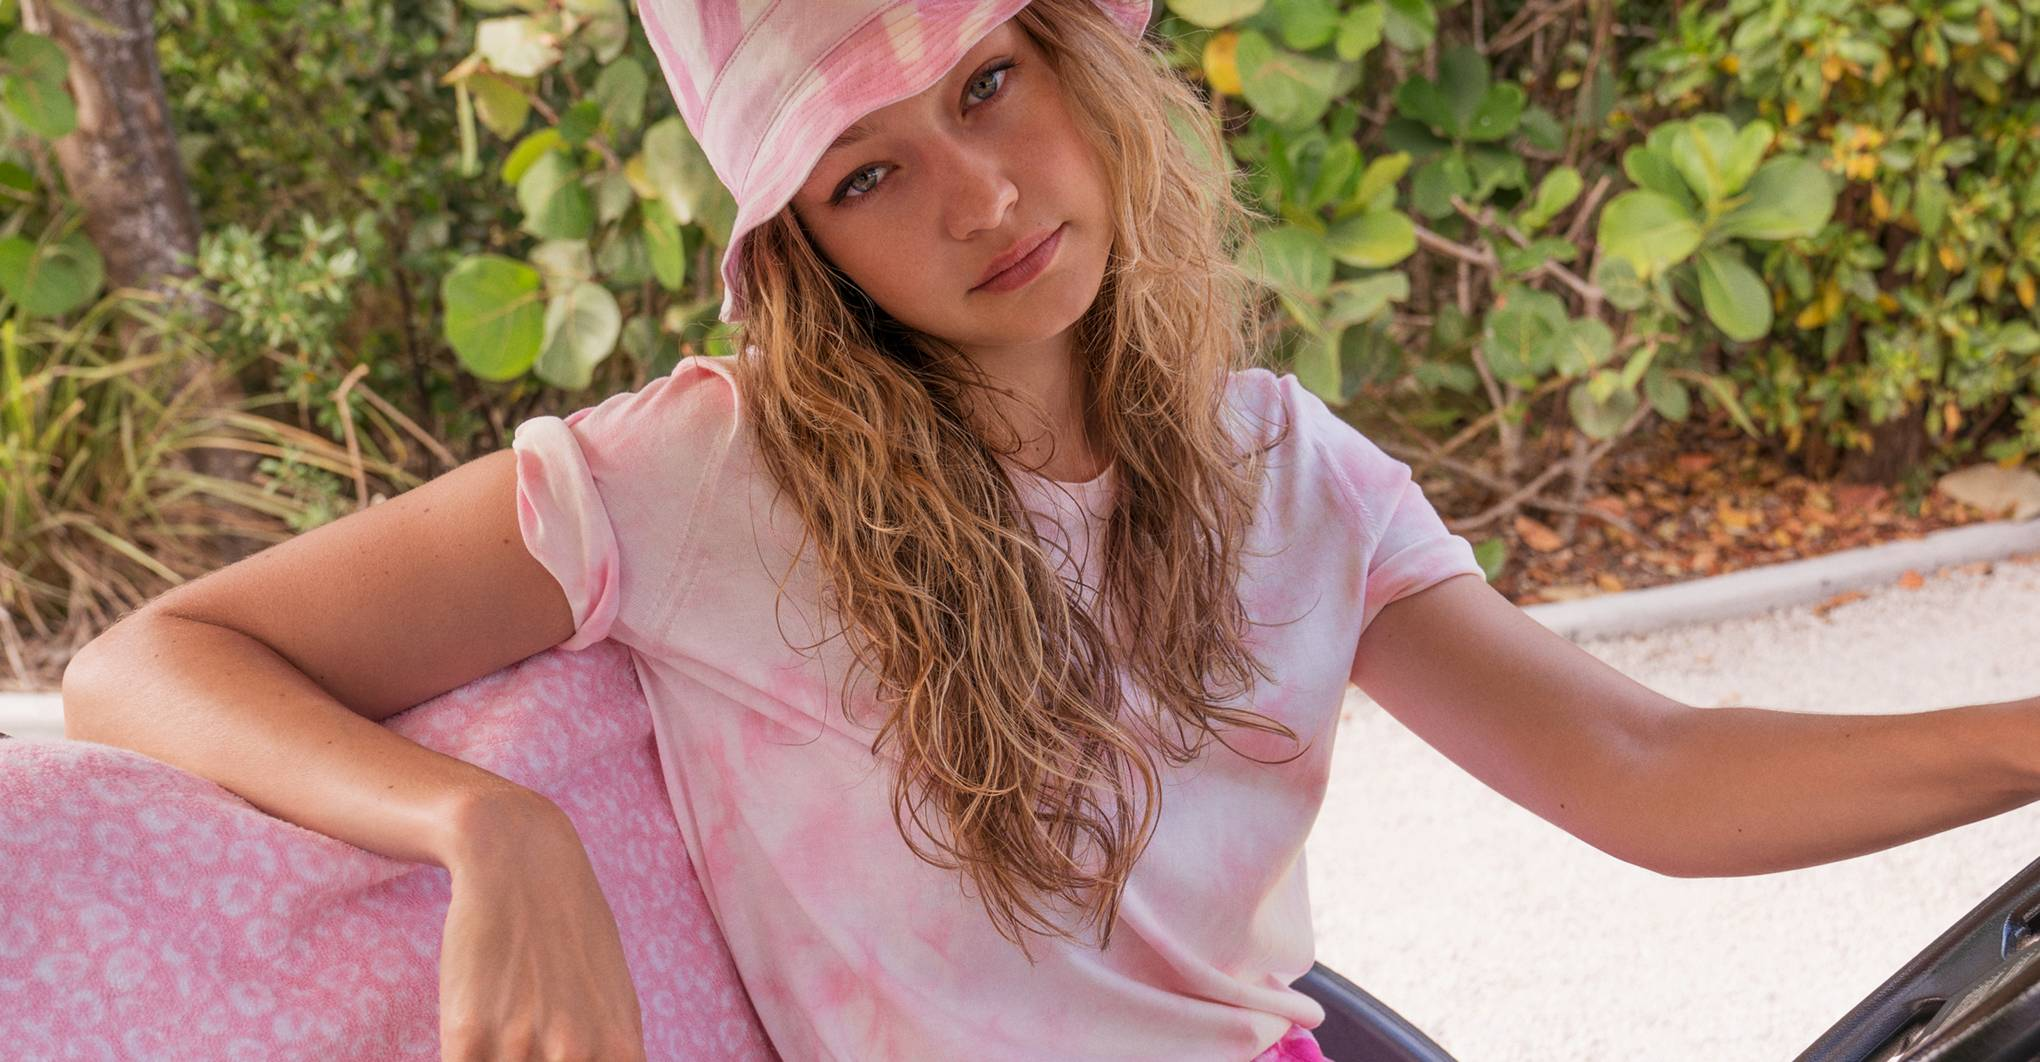 Gigi Hadid's guide to the Turks and Caicos Islands